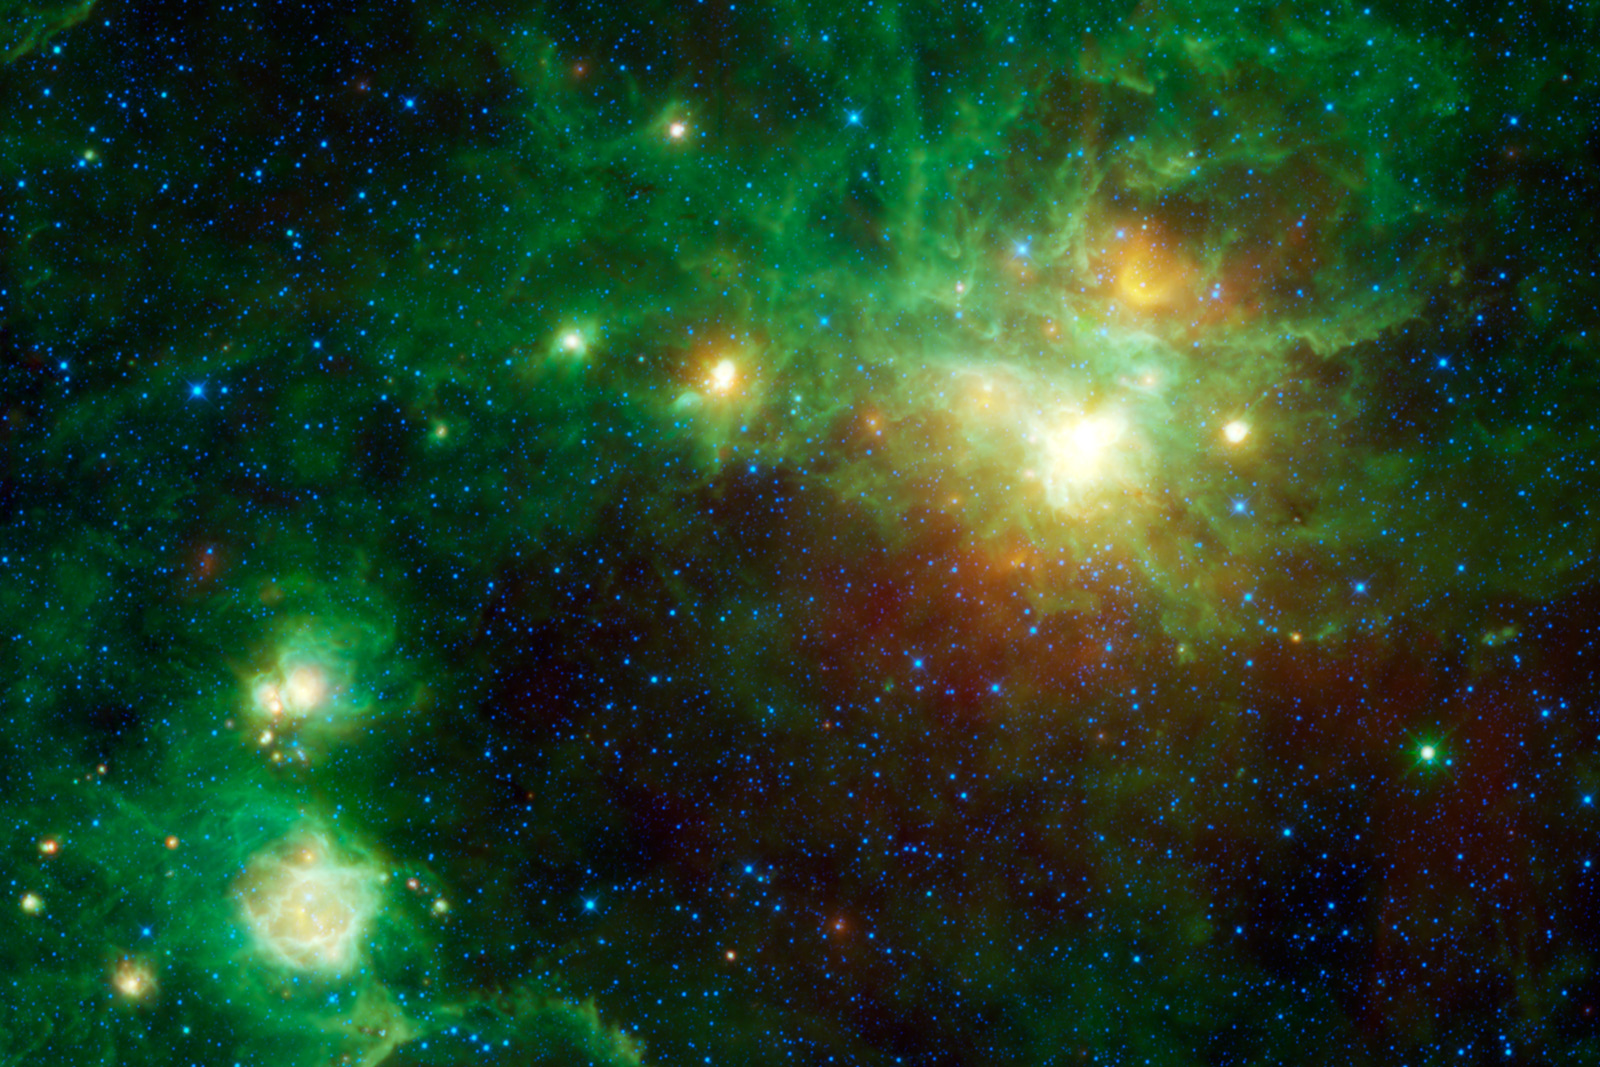 This image from NASAs Wide-field Infrared Survey Explorer, or WISE, highlights several star-forming regions. There are five distinct centers of star birth in this one image alone. Star-forming nebulae (called HII regions by astronomers) are clouds of gas and dust that have been heated up by nearby stars recently formed from the same cloud, and have appeared in previously featured WISE images.  The largest, brightest cloud, in the upper right is known as Gum 22. Its named after Colin Gum, an Australian astronomer who surveyed the southern hemisphere sky in the early 1950s looking for star-forming regions like these. He catalogued 85 new such regions, named Gum 1 to 85 (Gum Crater on the moon was also named in his honor).  Going counter-clockwise from Gum 22, the other catalogued nebulae in the image are Gum 23 (part of same cloud as 22), IRAS 09002-4732 (orange cloud near center), Bran 226 (upper cloud of the two at lower left), and finally Gum 25 at far lower left. There are also several smaller and/or more distant regions scattered throughout the image that have yet to be catalogued. Most of the regions are thought to be part of our local Orion spiral arm spur in the Milky Way Galaxy. Their distances range from about 4,000 to 10,000 light-years away.  Notice the very bright green star near the lower right portion of the image. You can tell its a star because it appears to have spikes sticking out of it (diffraction spikes like these are an optical effect caused by the structure of the telescope). Bright stars in WISE images are typically blue, so you know this one is special. Known as IRAS 08535-4724, its a unique type of stellar giant called a carbon star. Carbon stars are similar to red giants stars, which are much larger than the Sun, glow brightly in longer wavelengths, and are in the late stages of their lives. But they have unusually high amounts of carbon in their outer atmospheres. Astronomers think this carbon comes either from convection currents deep wit